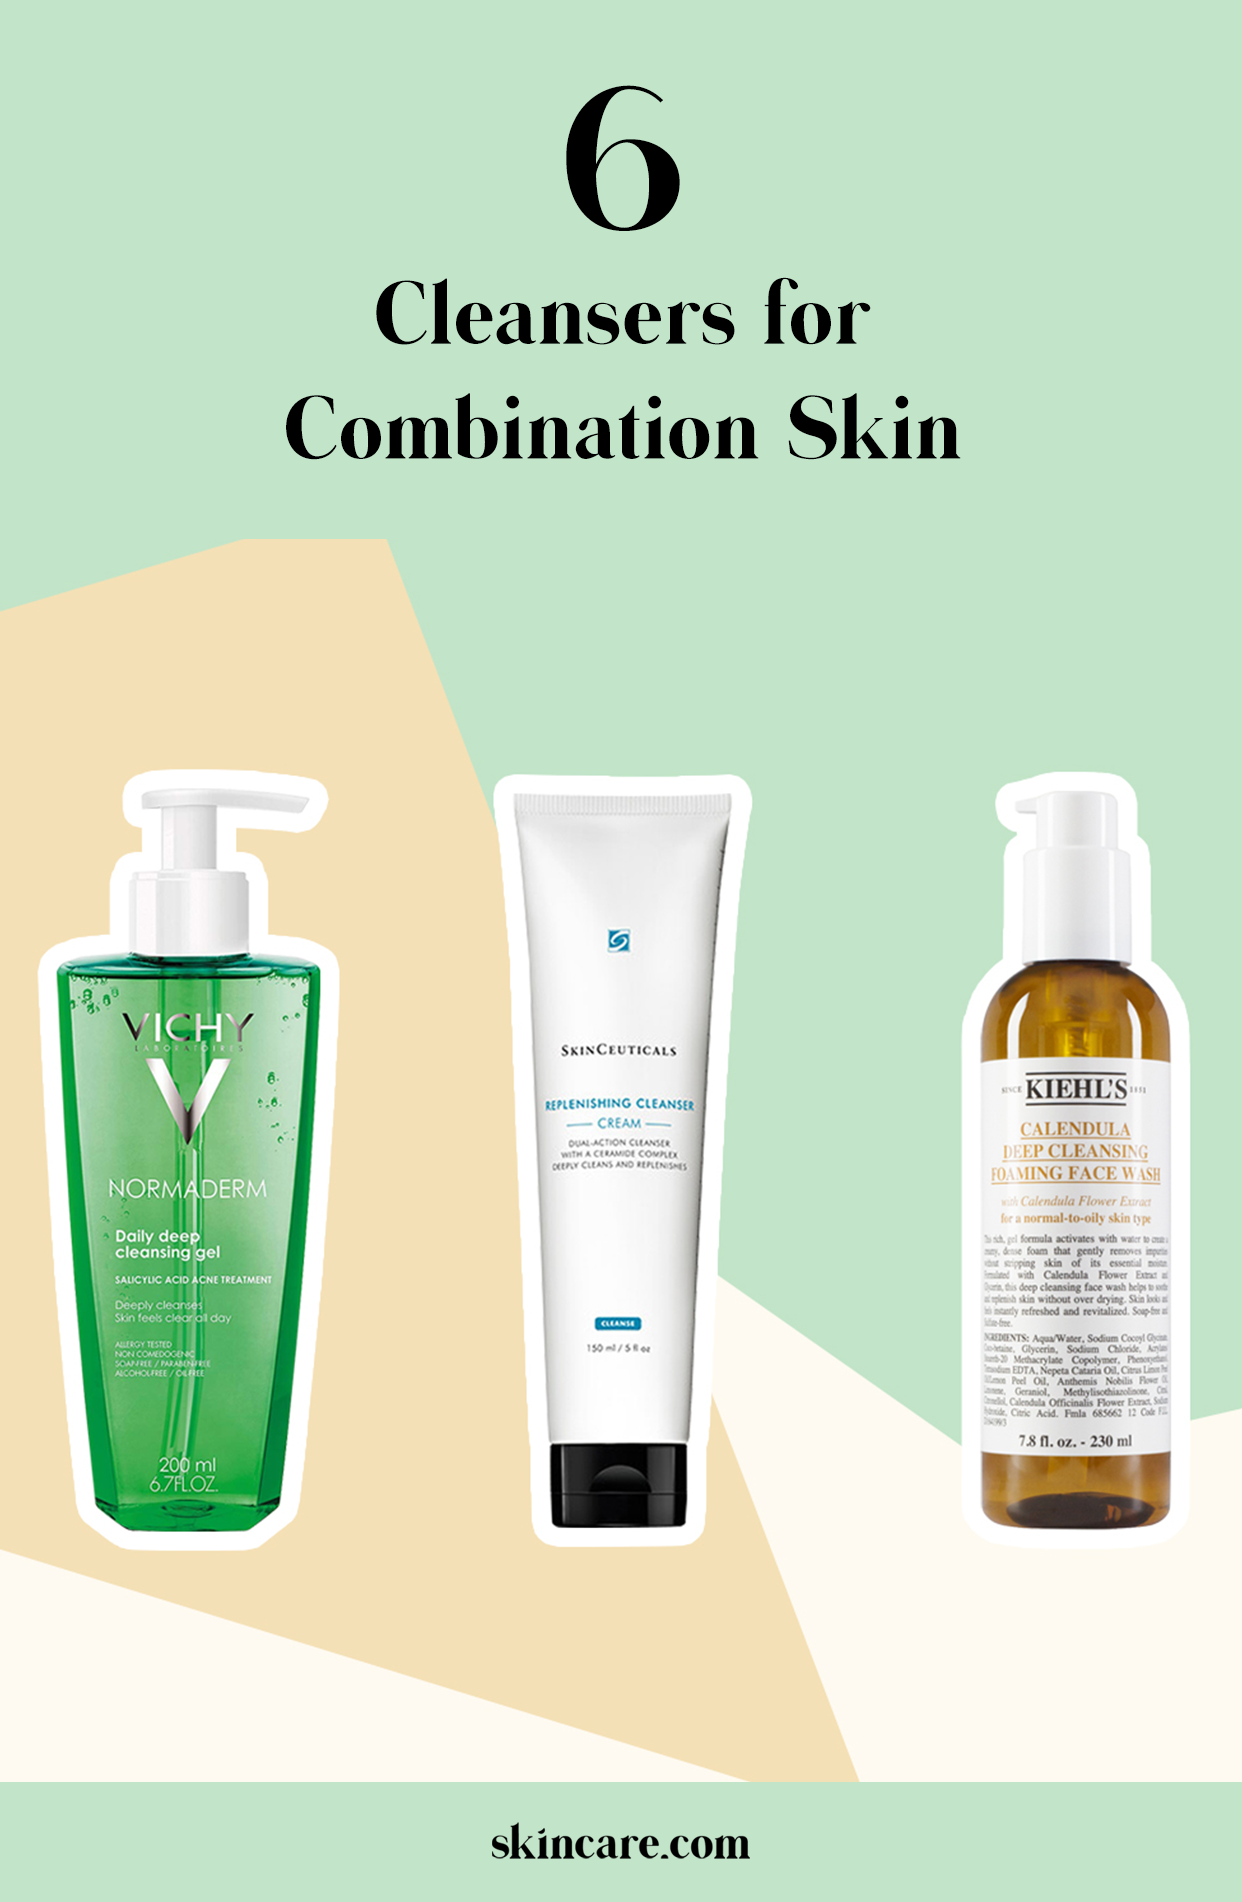 6 Cleansers For Combination Skin Skincare Com By L Oreal In 2020 Cleanser For Combination Skin Combination Skin Face Wash Skin Cleanser Products